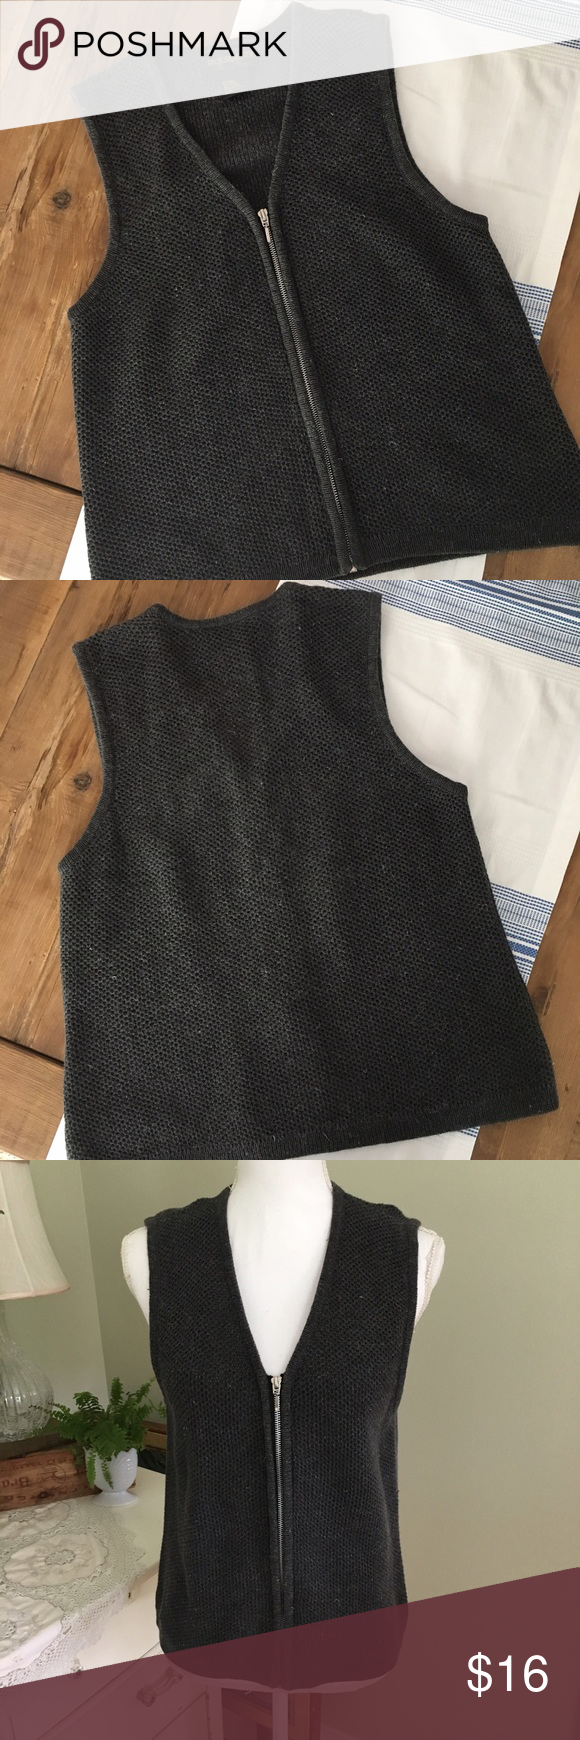 Sale! Requirements Charcoal Gray Sweater Vest This sleeveless ...